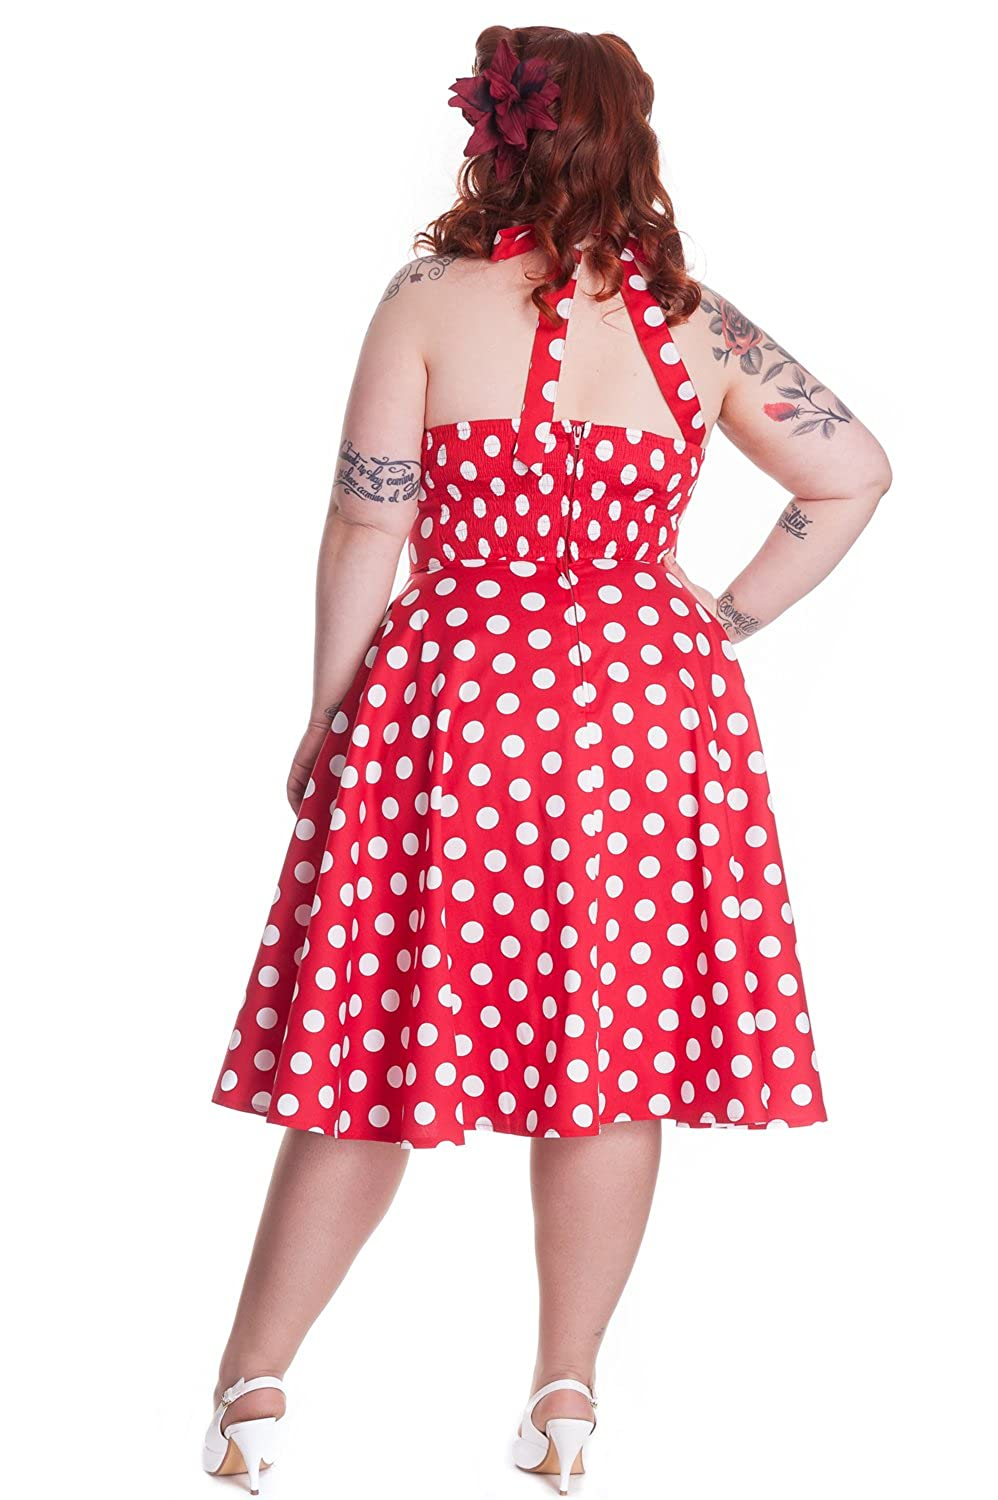 39ed28850b0 Hell Bunny Plus Size Rockabilly Red and White Polka Dot Minnie Halter Dress  (XXL (2XL)) at Amazon Women s Clothing store